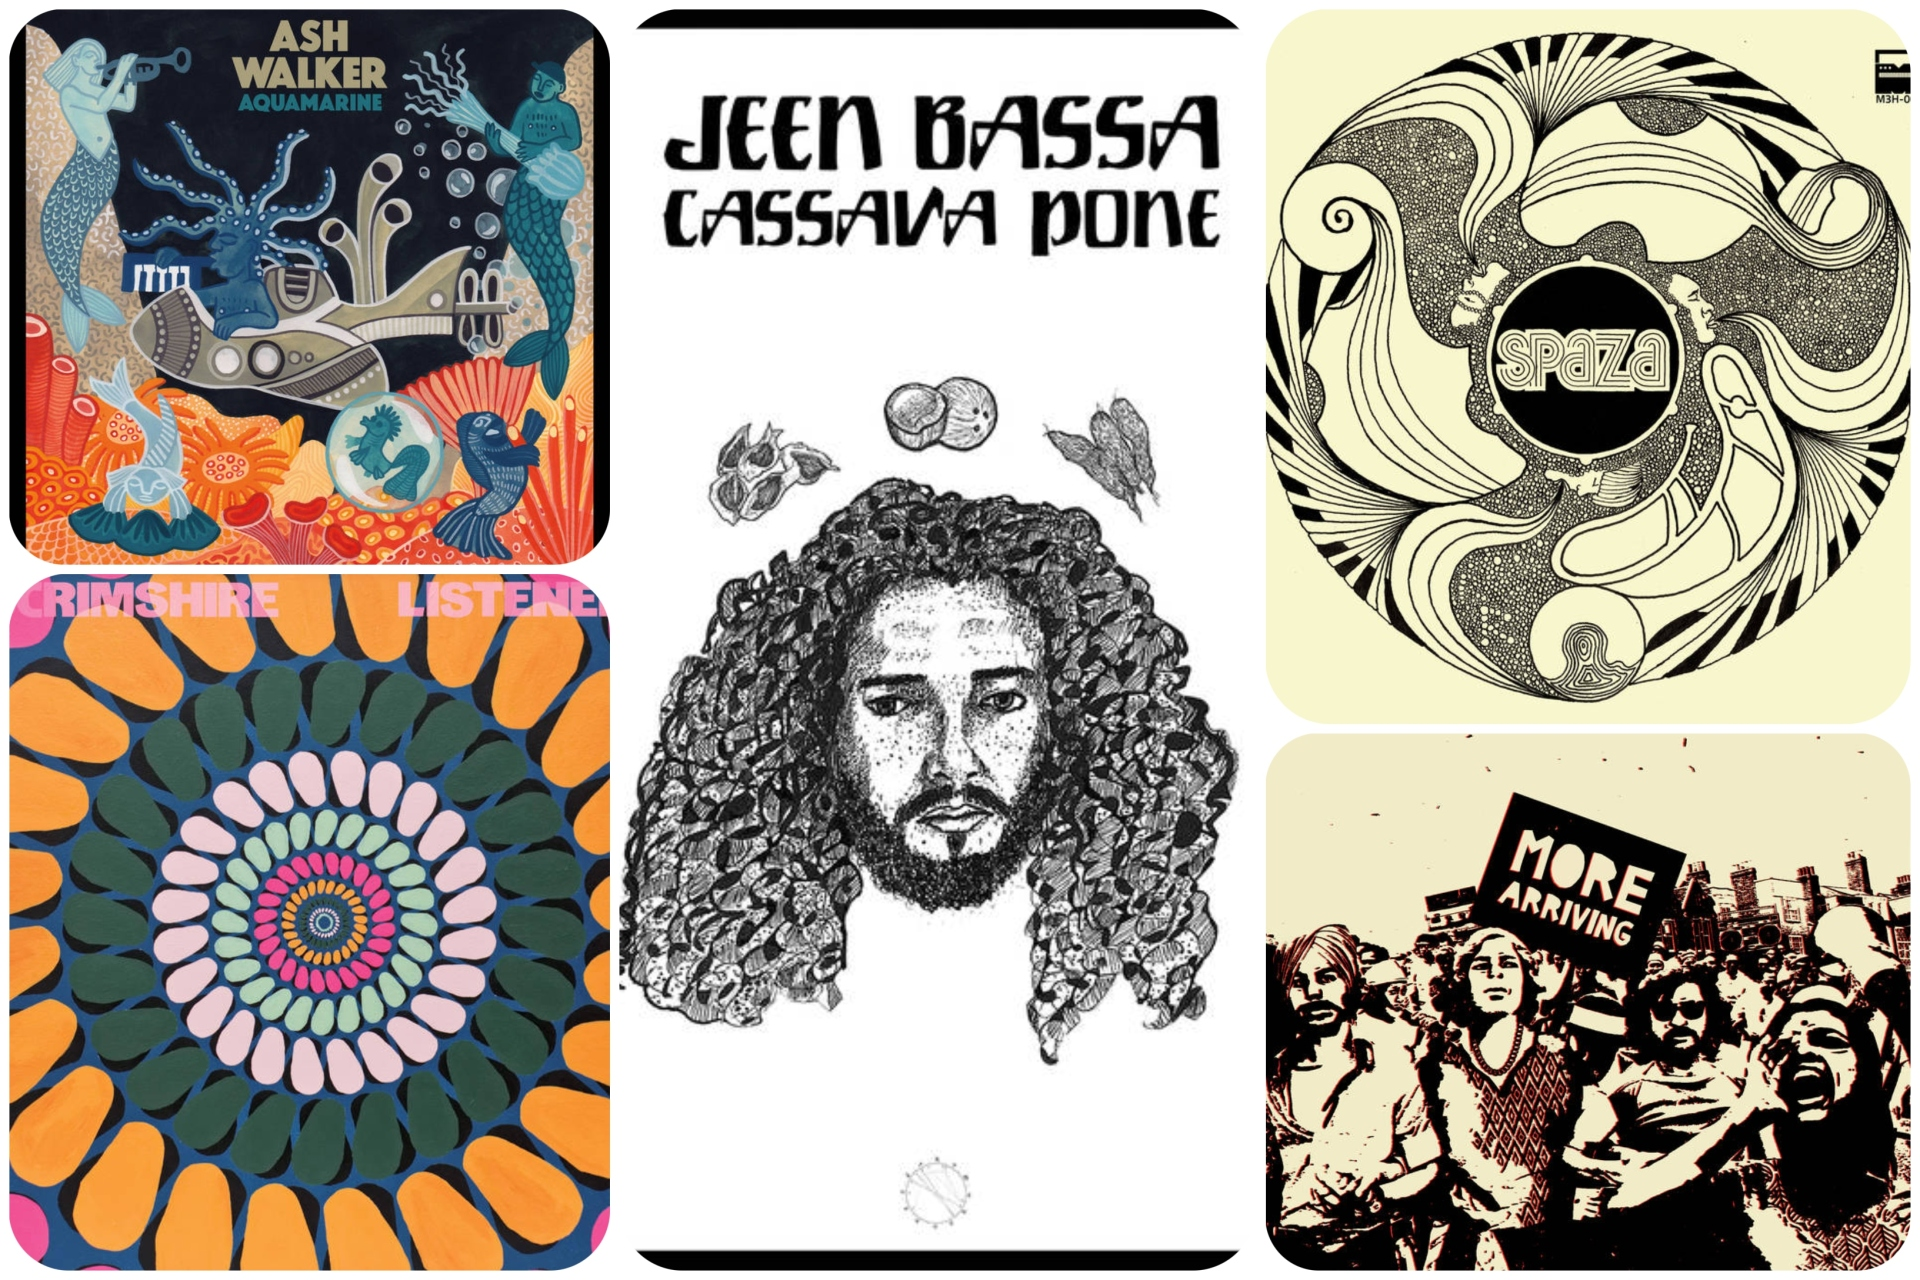 Stream music from SPAZA, Sarathy Kowar, Ash Walker, Jeen Bassa and Scrimshire.